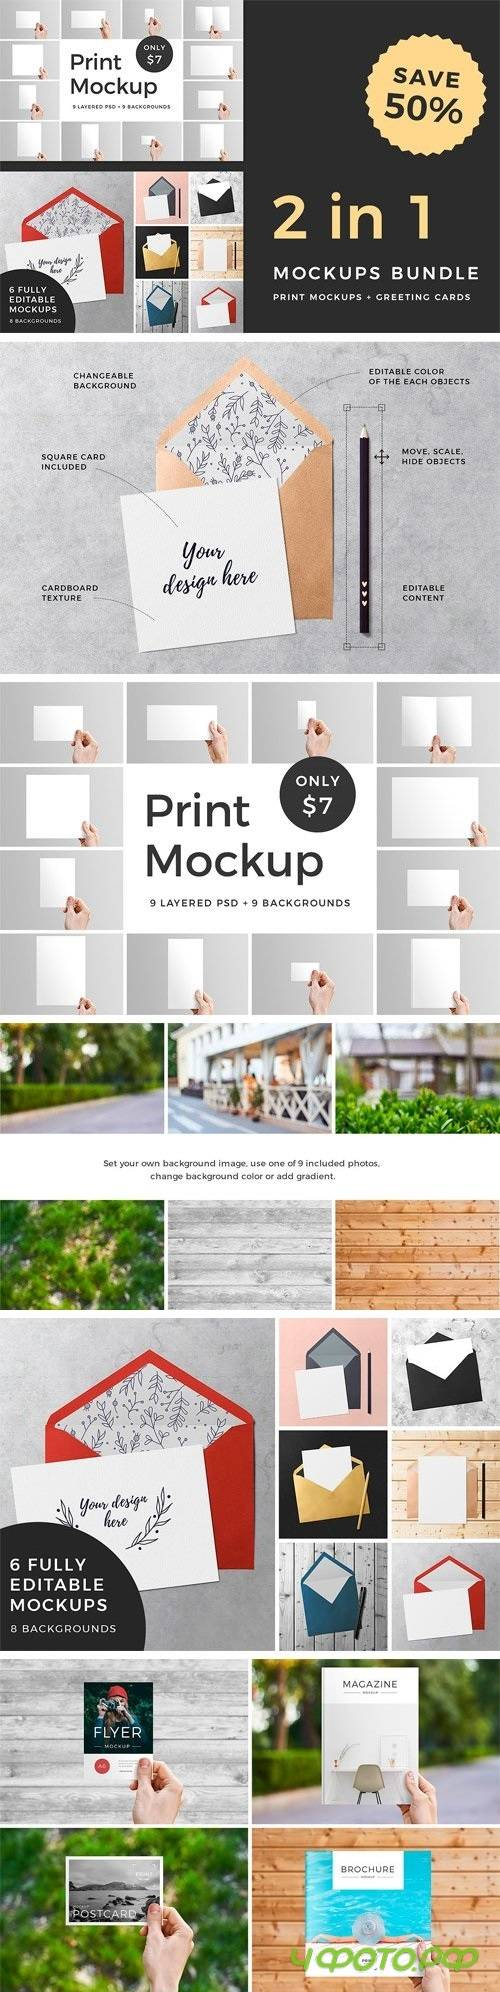 NEW! 2 in 1 Print Mockups Bundle 1680414